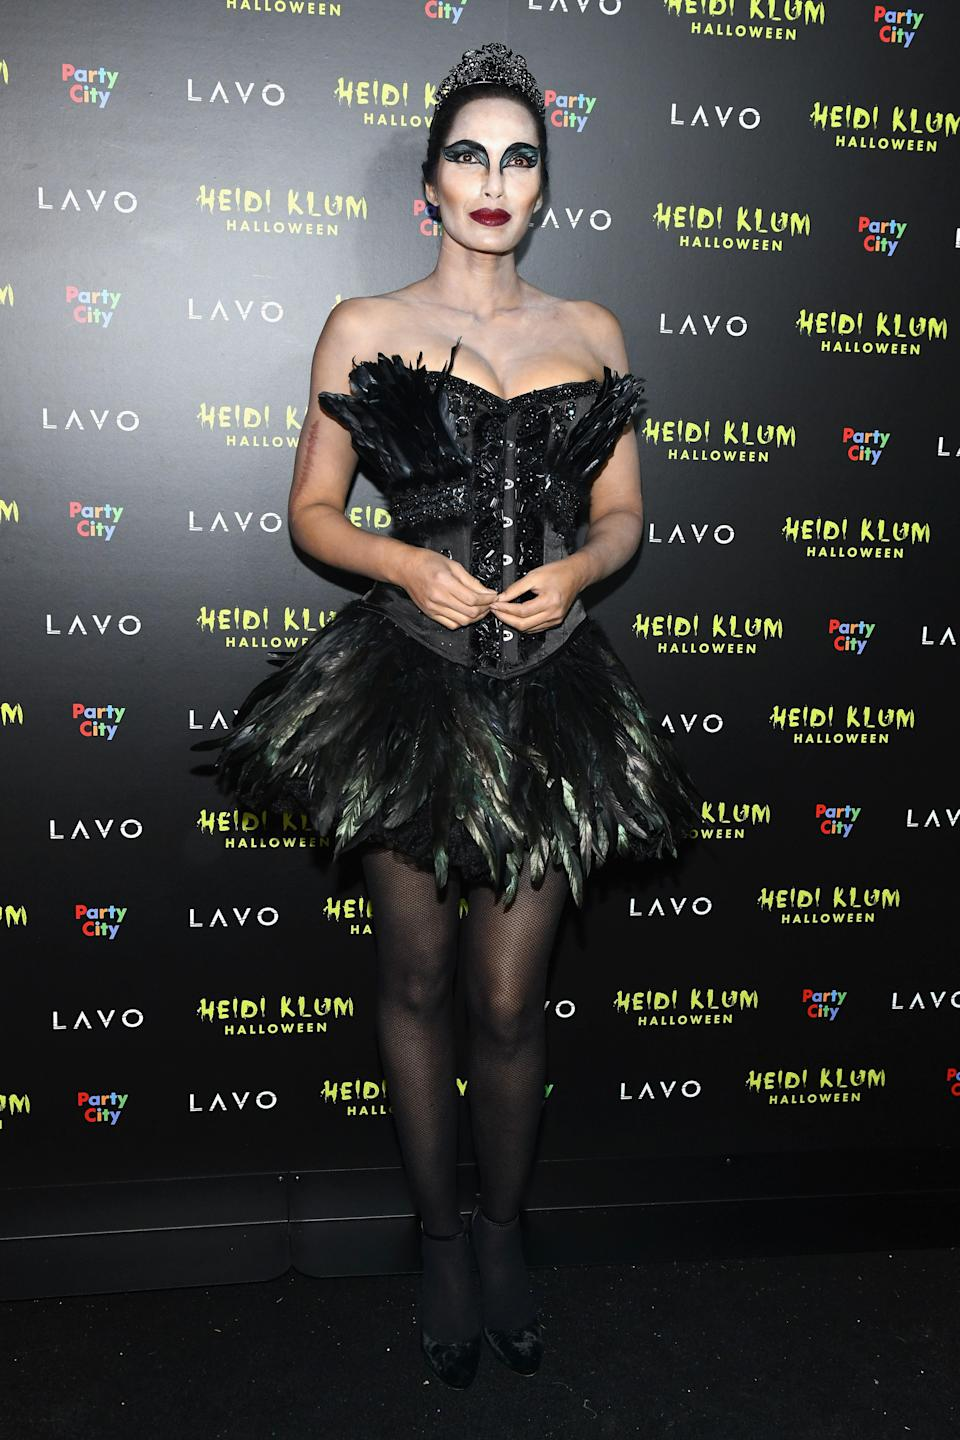 While Padma Lakshmi's <em>Black Swan</em> costume is fairly elaborate, you can cop a simpler version for yourself at the last minute if you have black tights, a black leotard, and a makeup bag's worth of black eyeshadow.